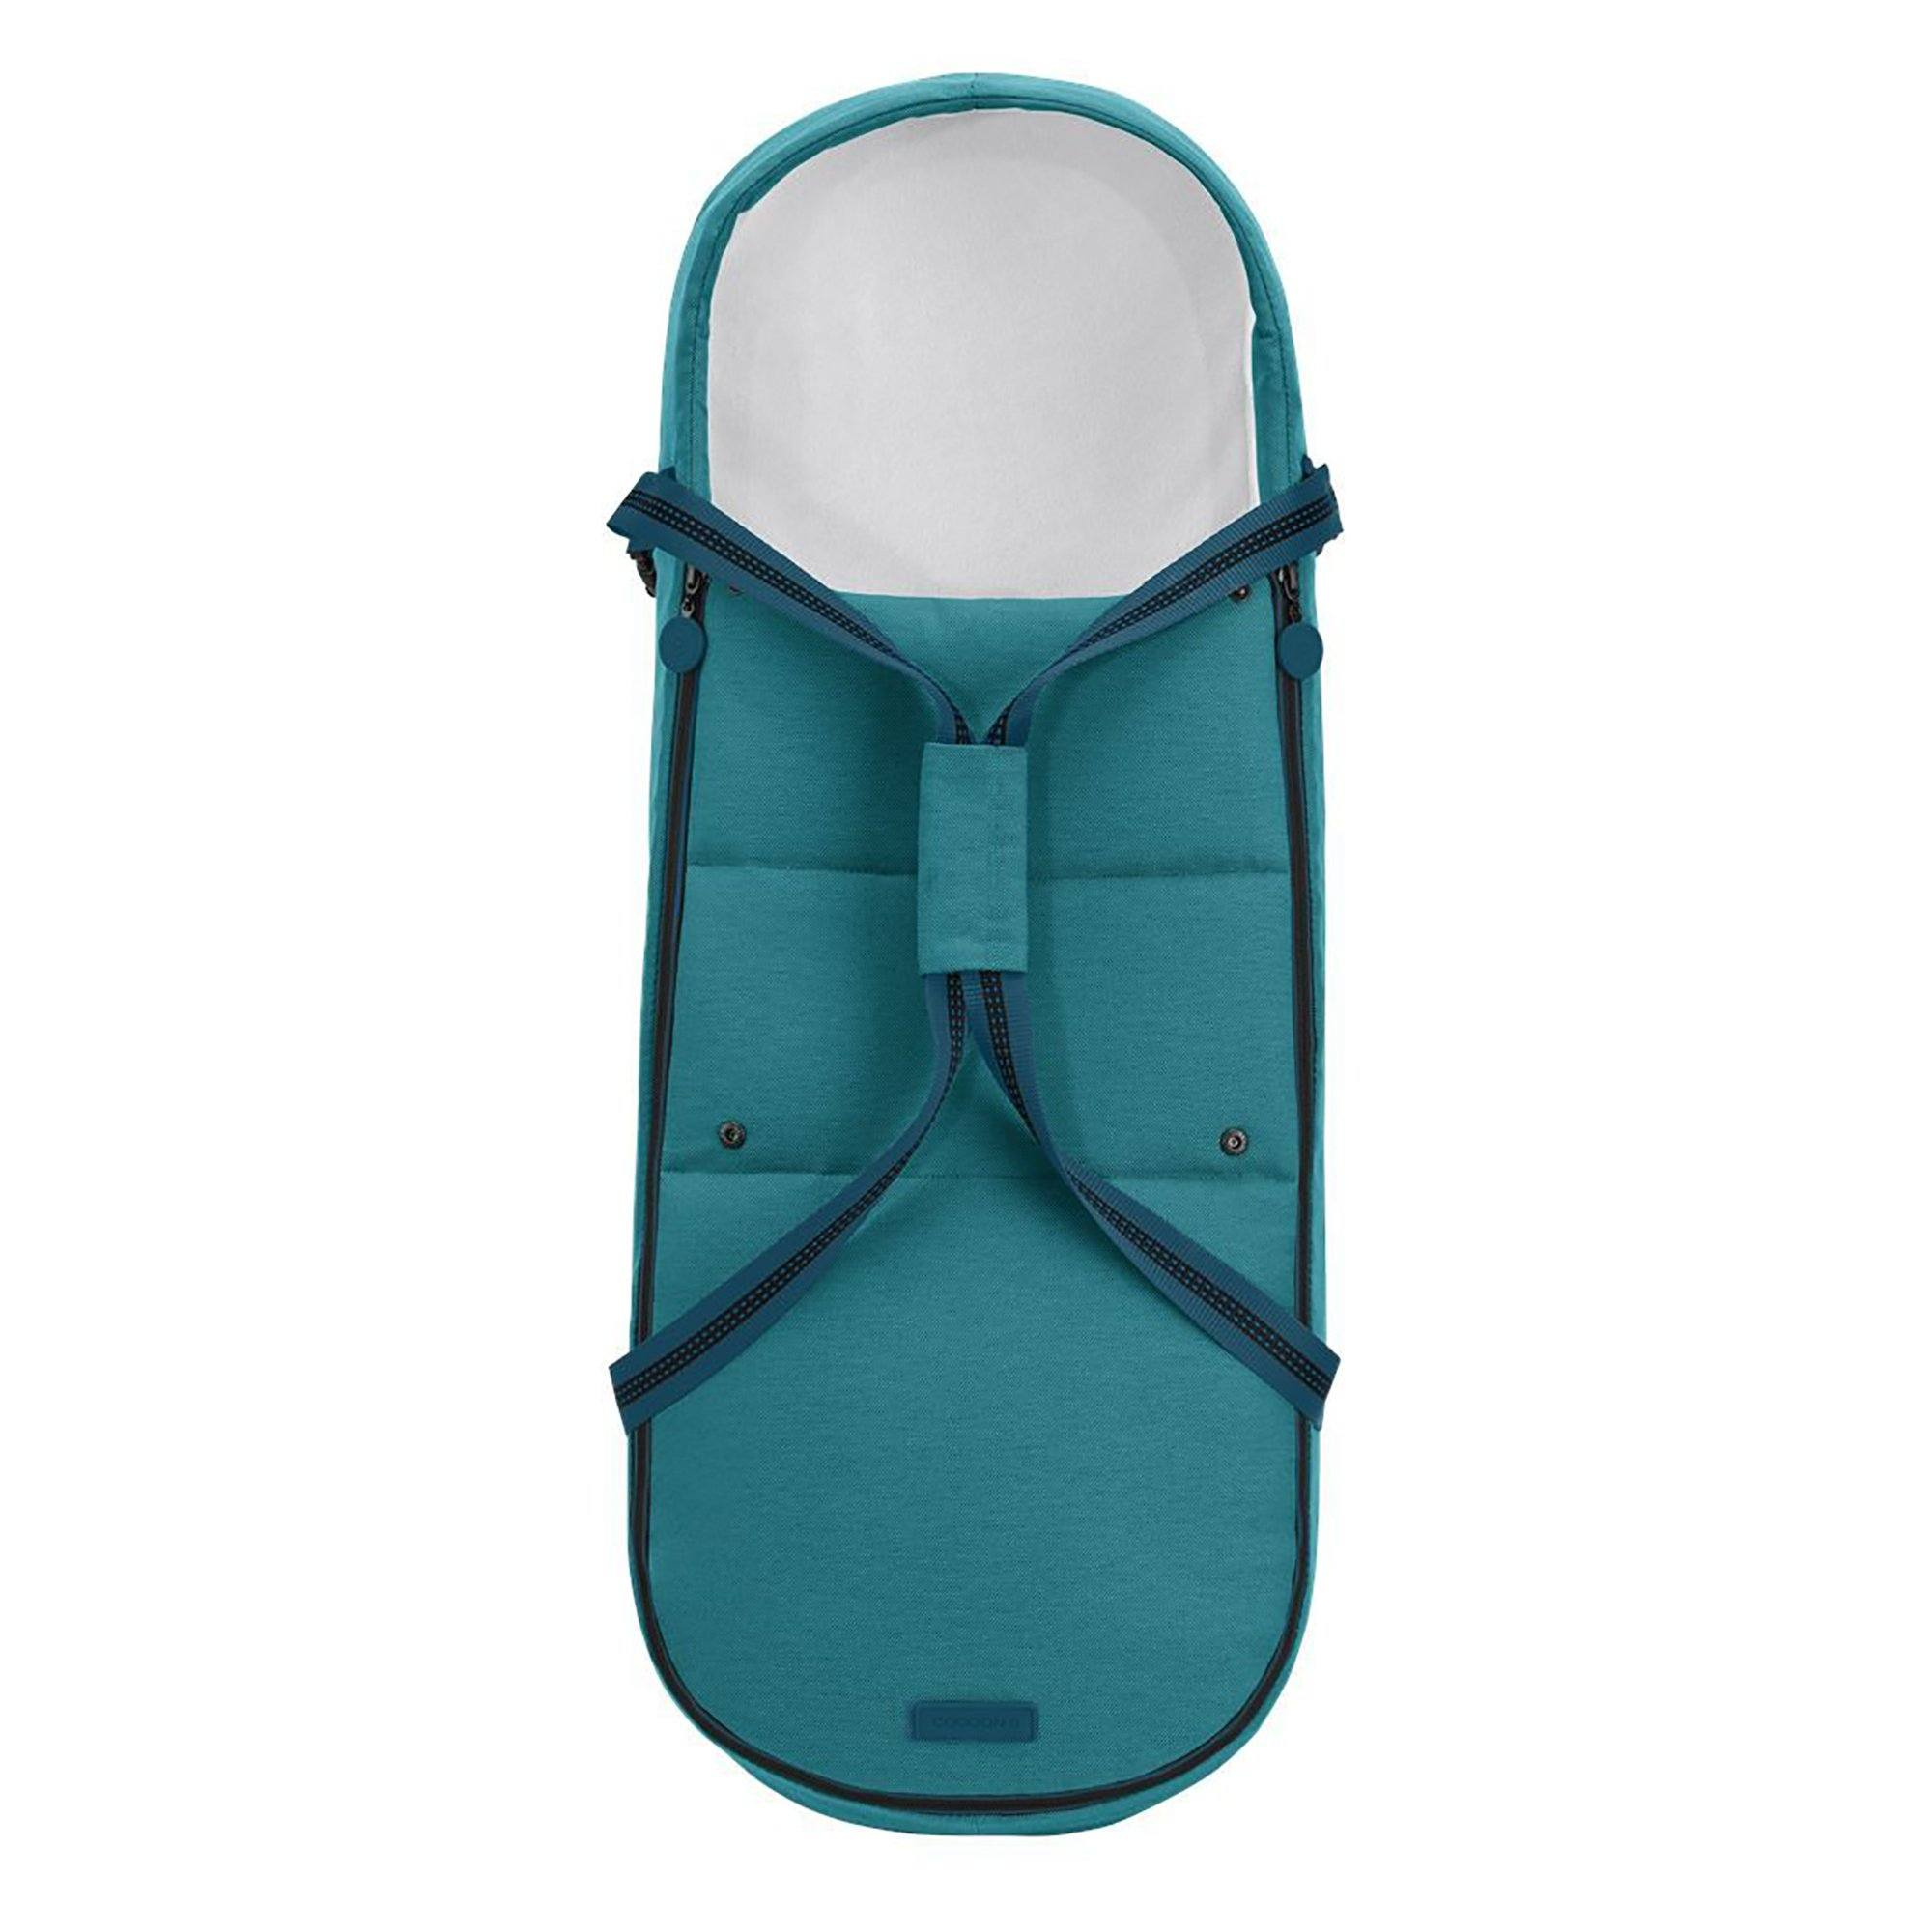 Cybex Cocoon S - River Blue